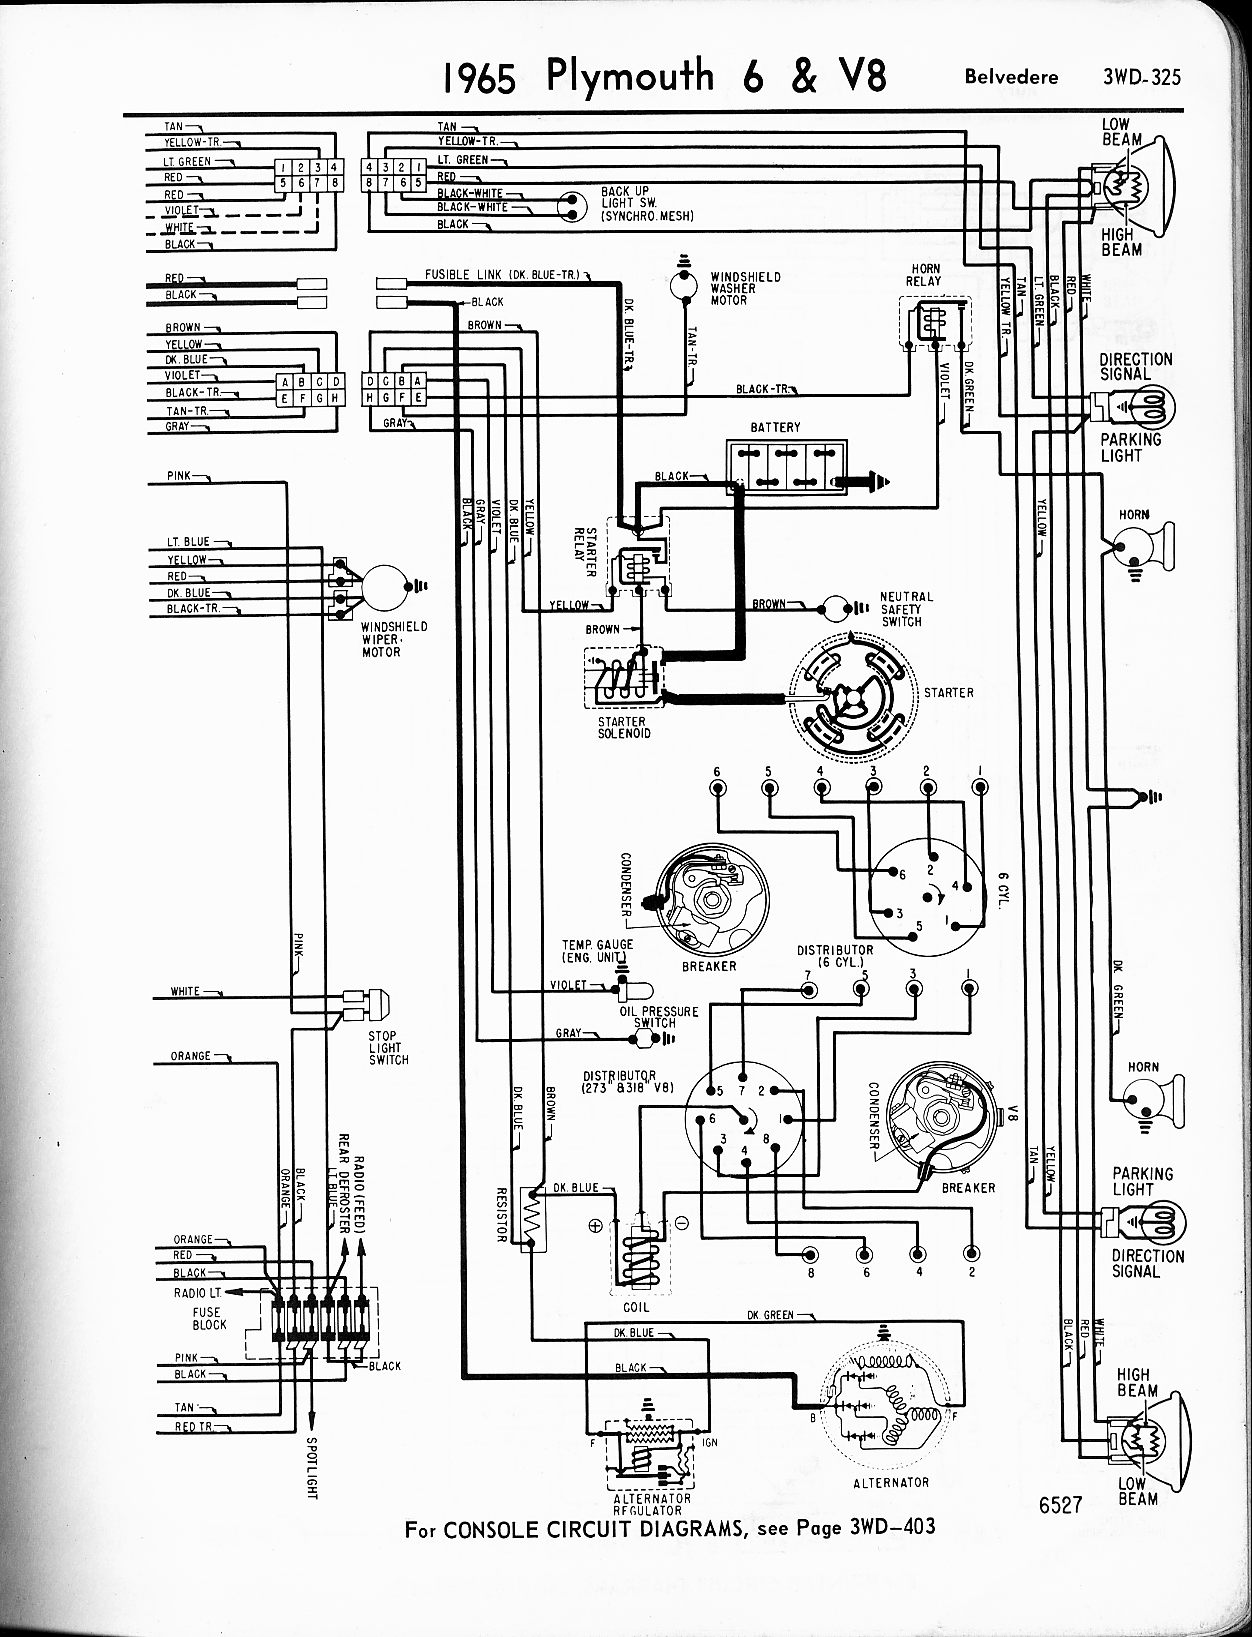 Dodge Alternator Wiring 1965 Diagram Data Durango Ignition 67 Plymouth Barracuda Library 1998 Ground Wire Satellite